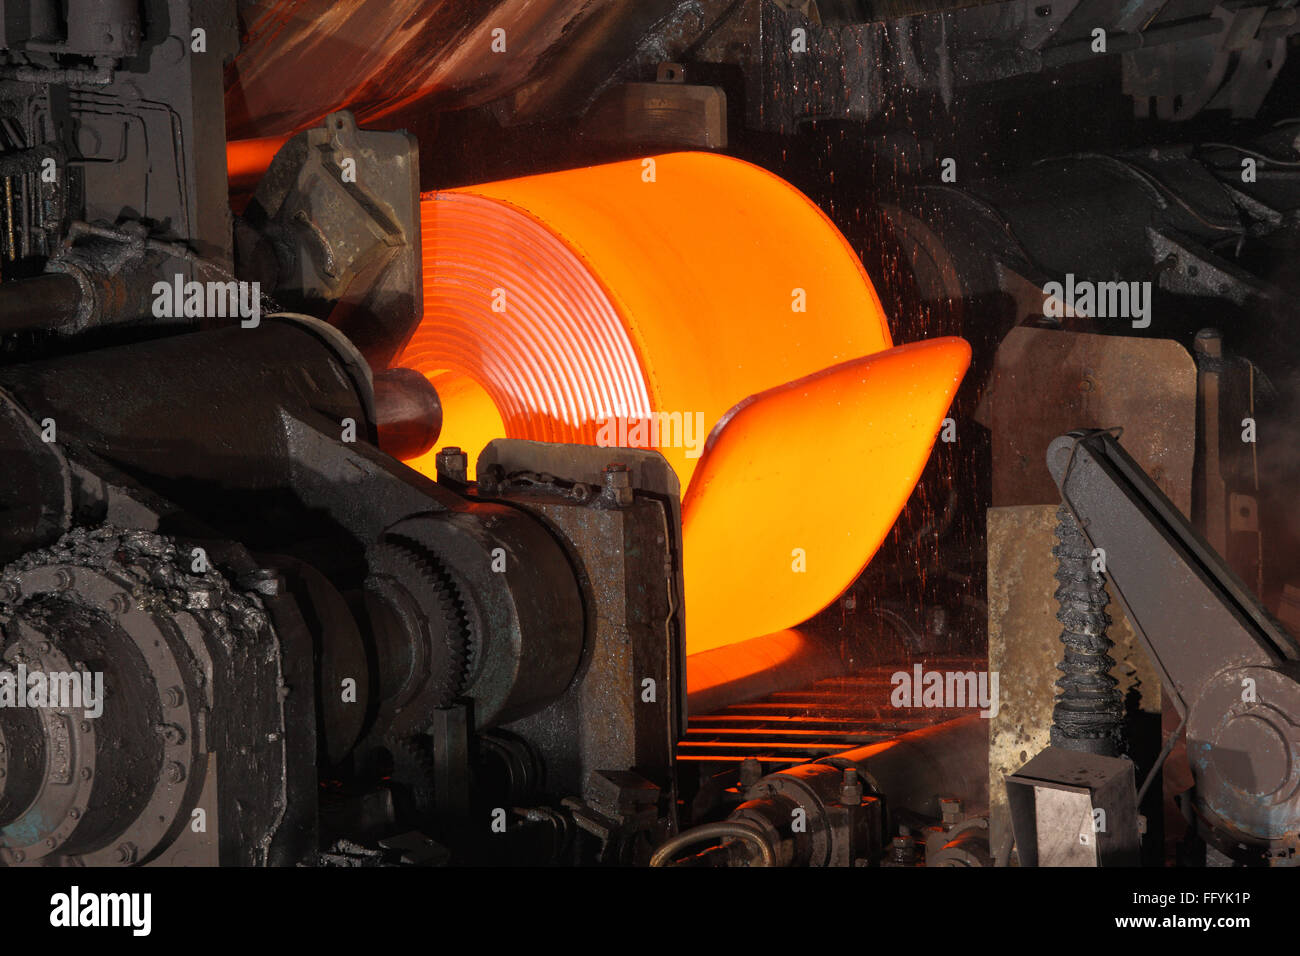 Red Hot Steel Coil in steel factory India - Stock Image